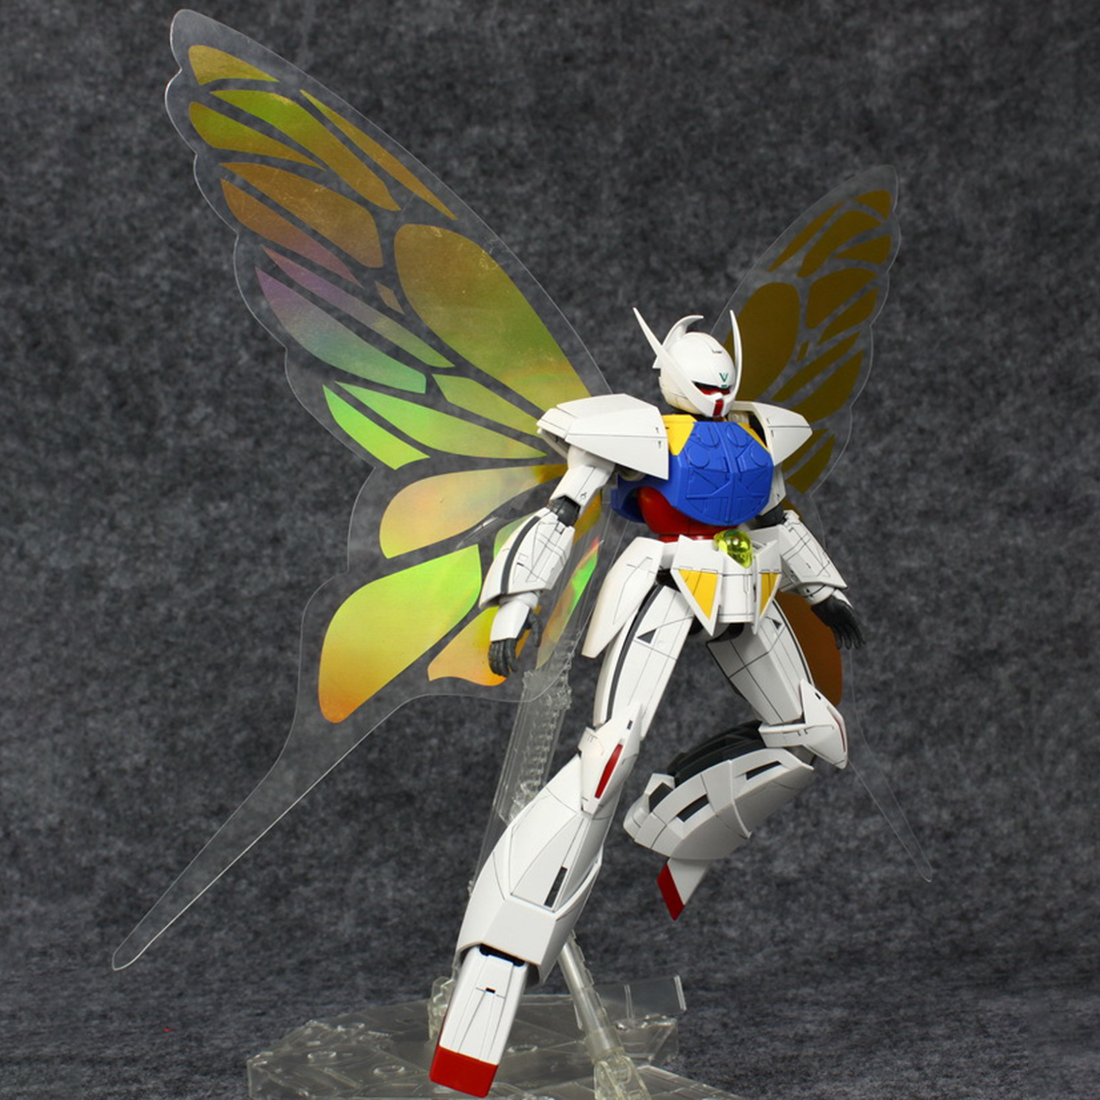 Light-Wing Special-Effects-Decoration Gundam Action Figures-Golden 1/100 for Toy Butterfly